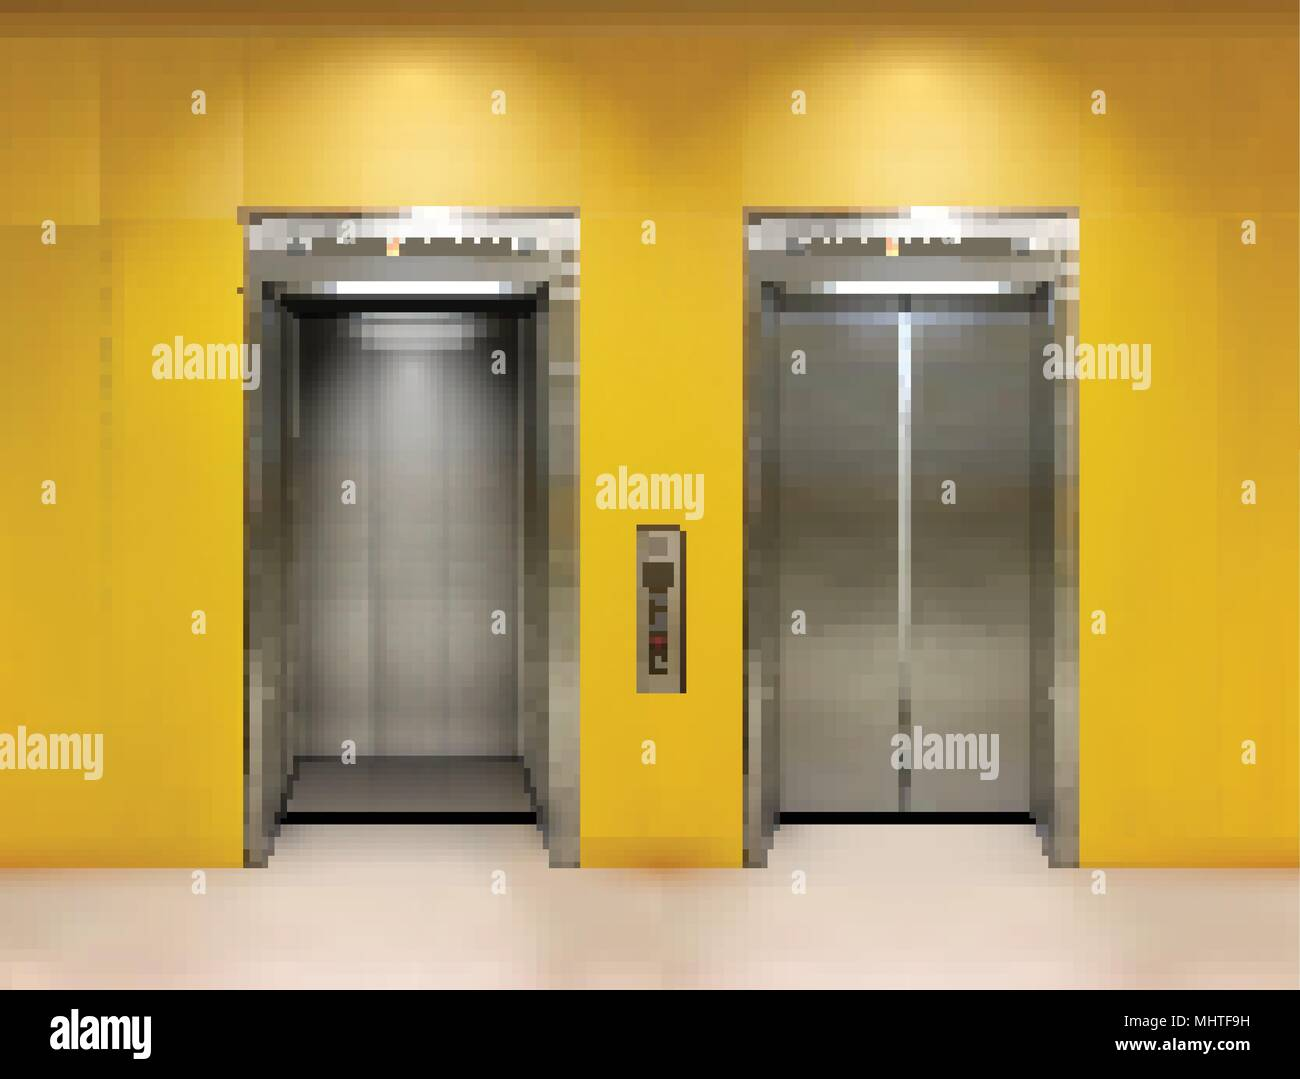 Chrome metal office building elevator doors  Open and closed